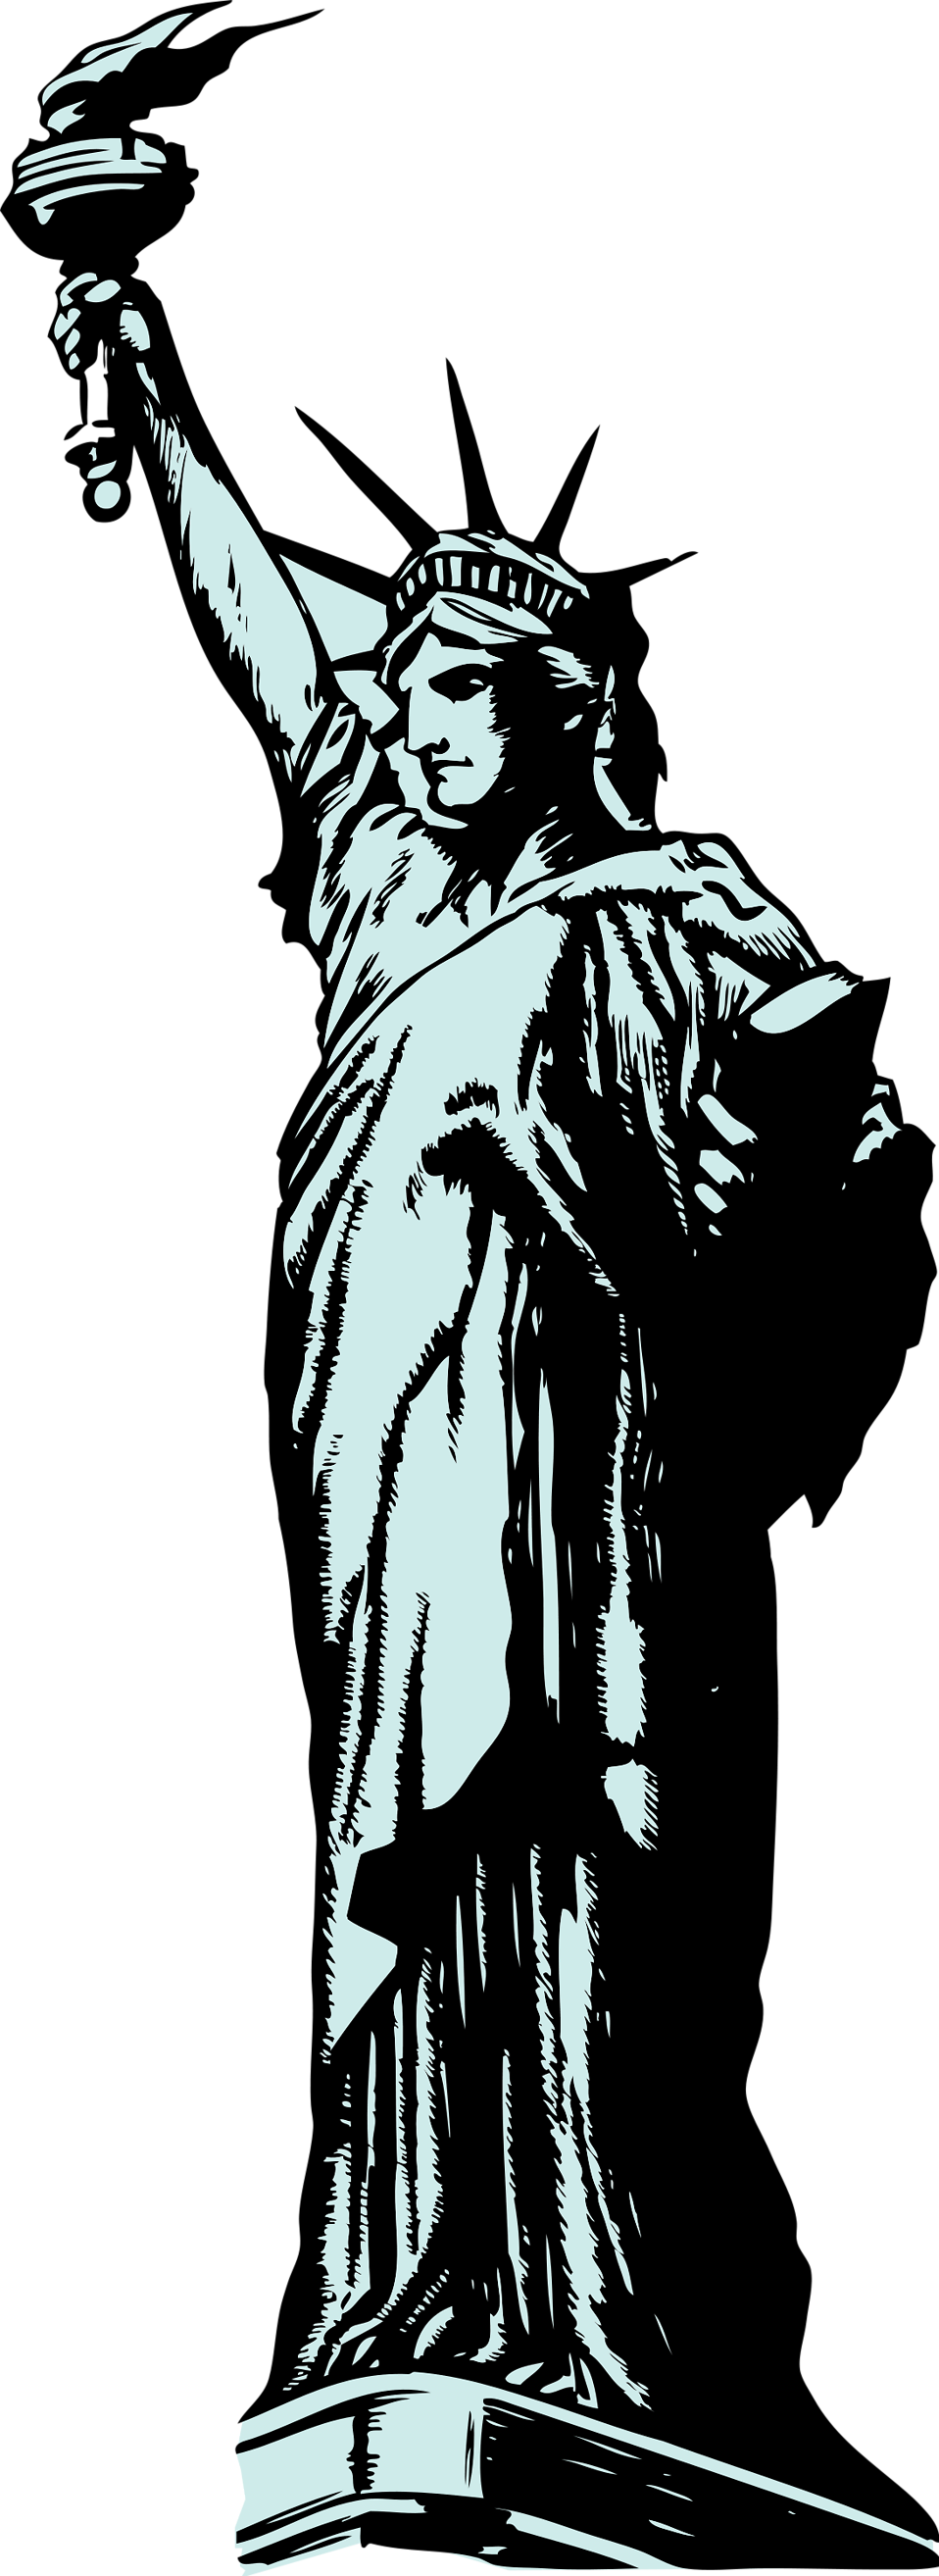 Statue of liberty transparent png. Free stock photo illustration